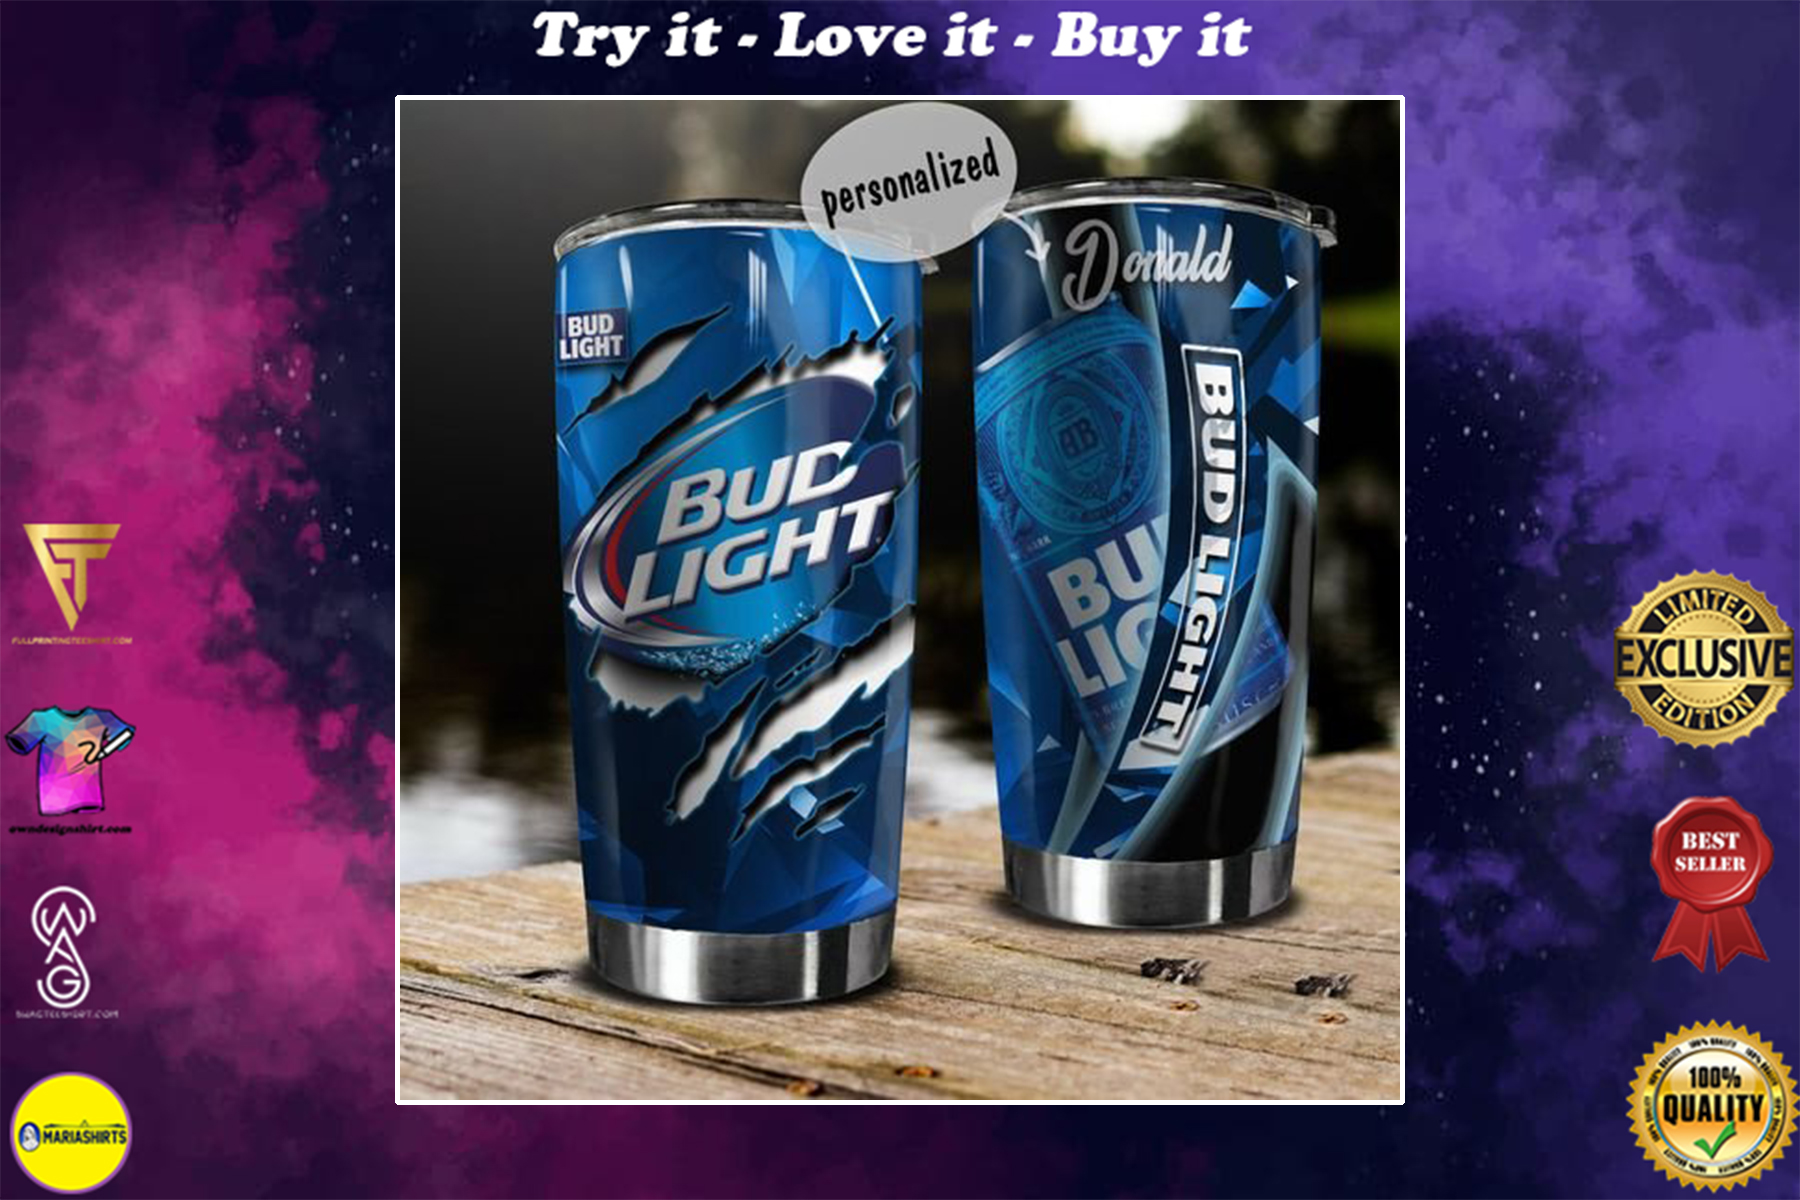 personalized name bud light beer tumbler